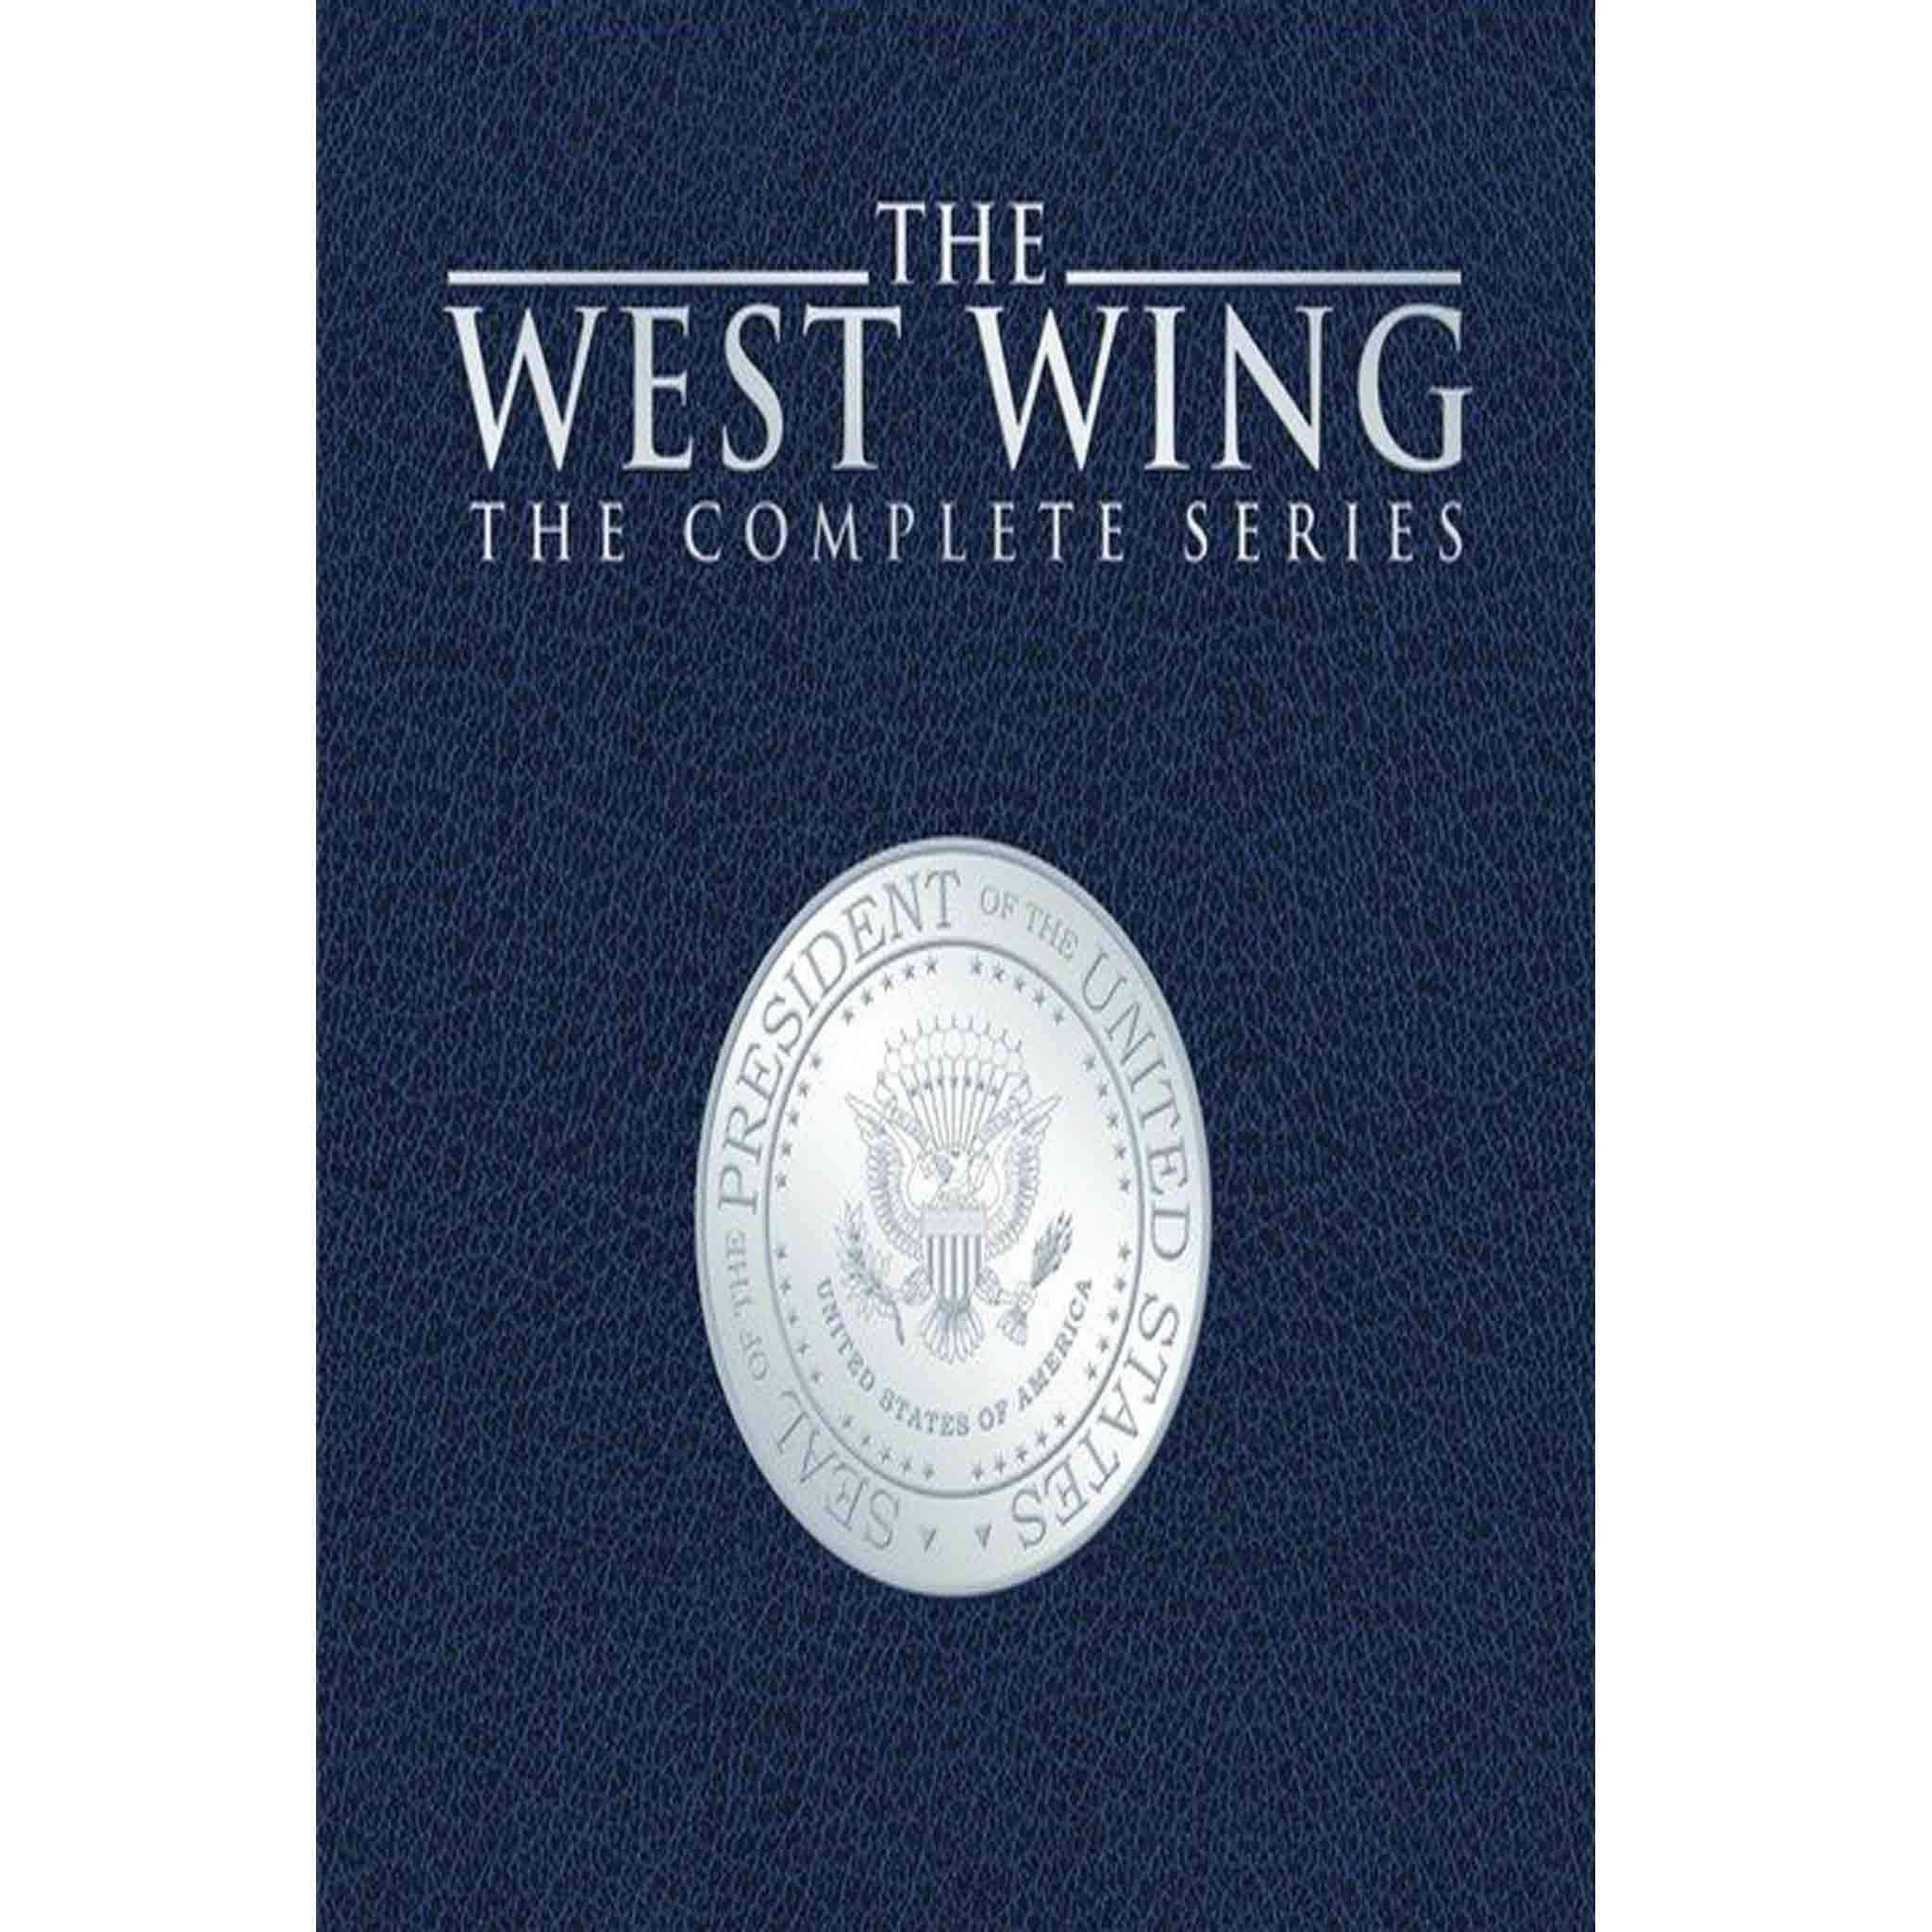 West Wing DVD Complete Series Box Set Warner Brothers DVDs & Blu-ray Discs